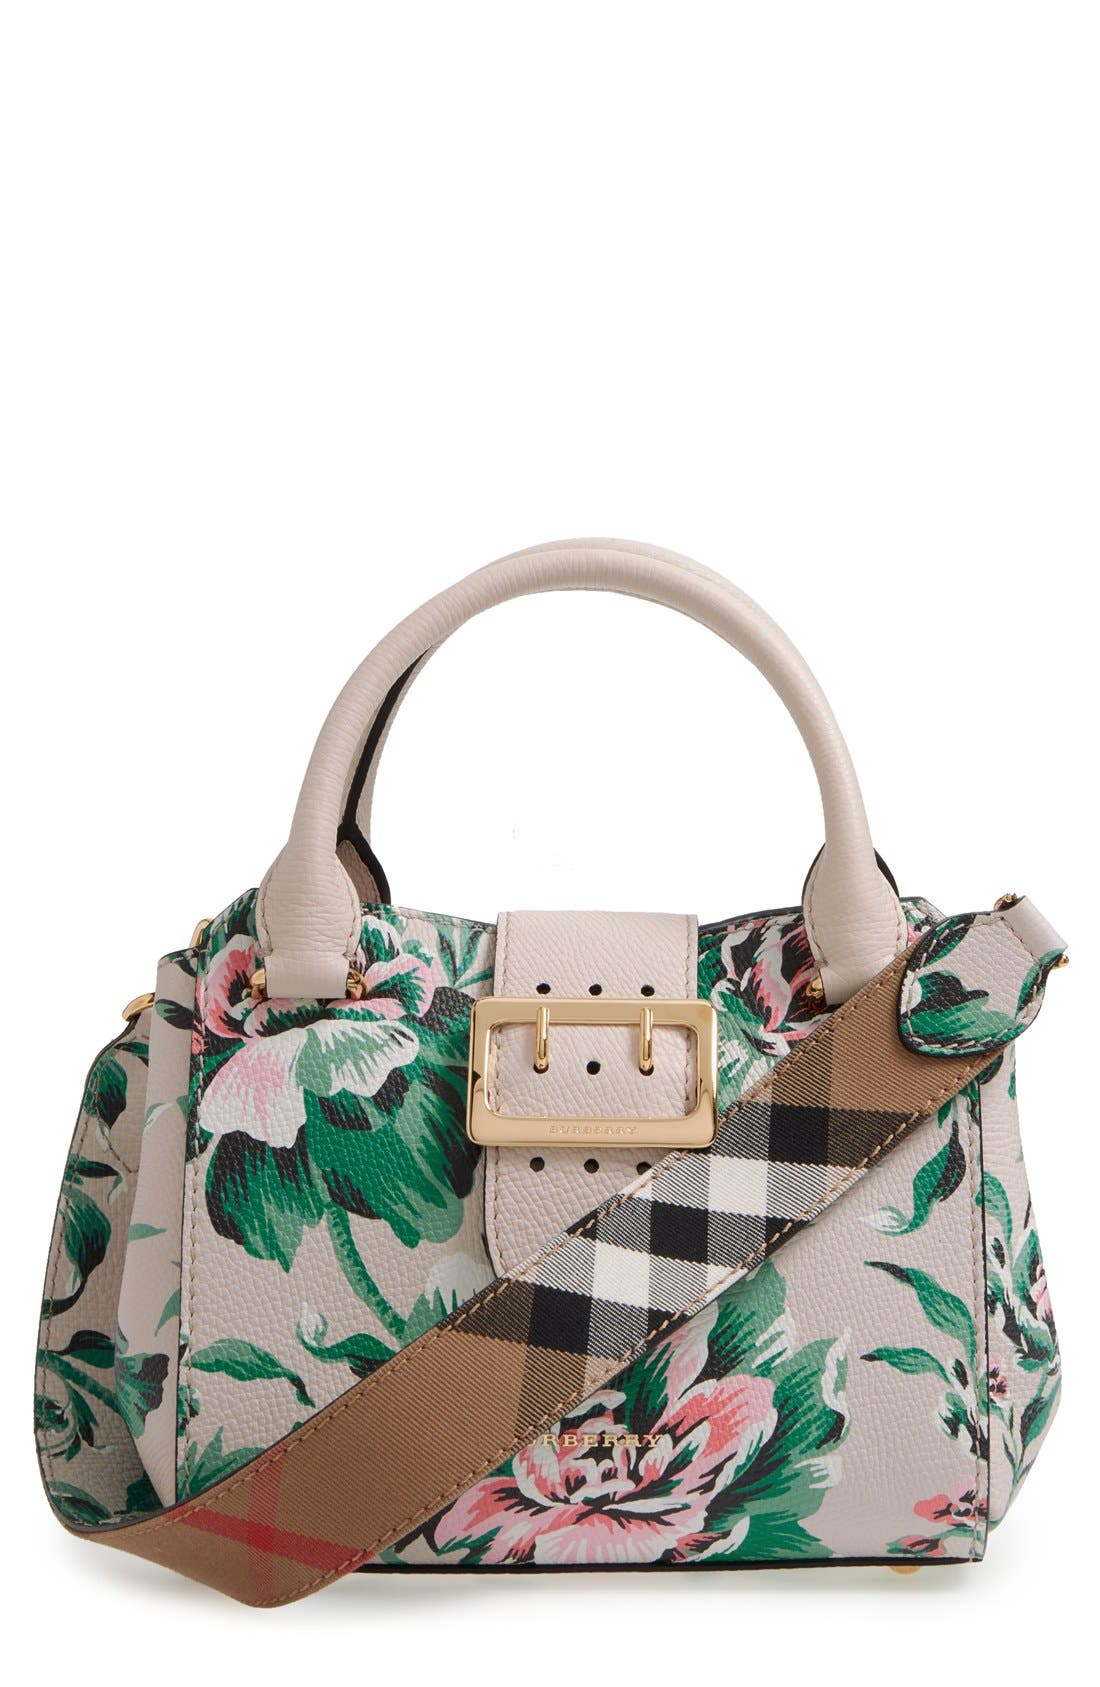 Small Buckle Floral Calfskin Leather Satchel,                             Main thumbnail 1, color,                             321